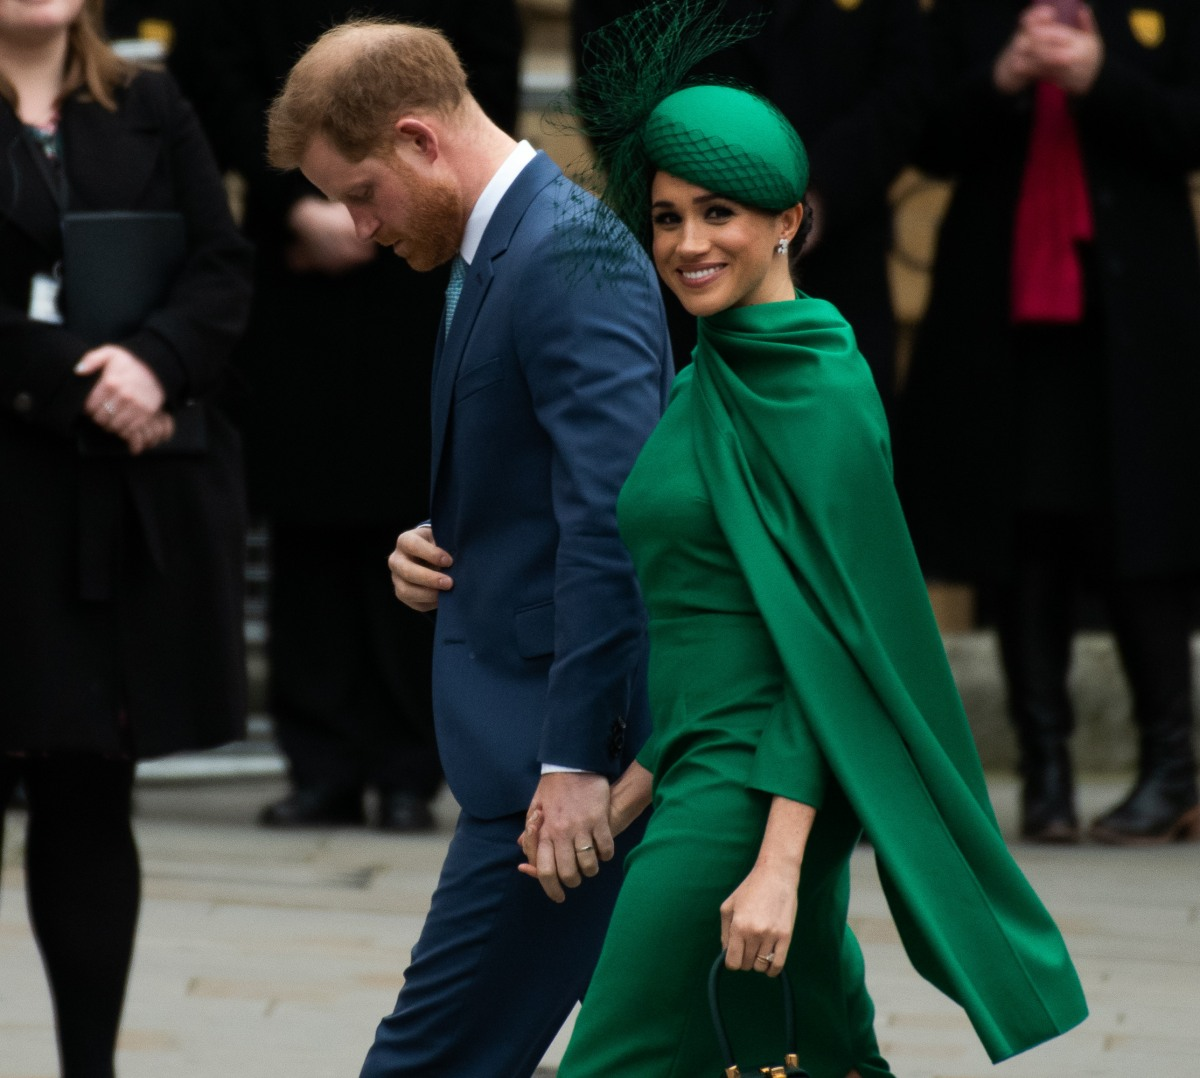 HRH The Duke Of Sussex Prince Harry and HRH The Duchess of Sussex Meghan attends The Commonwealth Da...